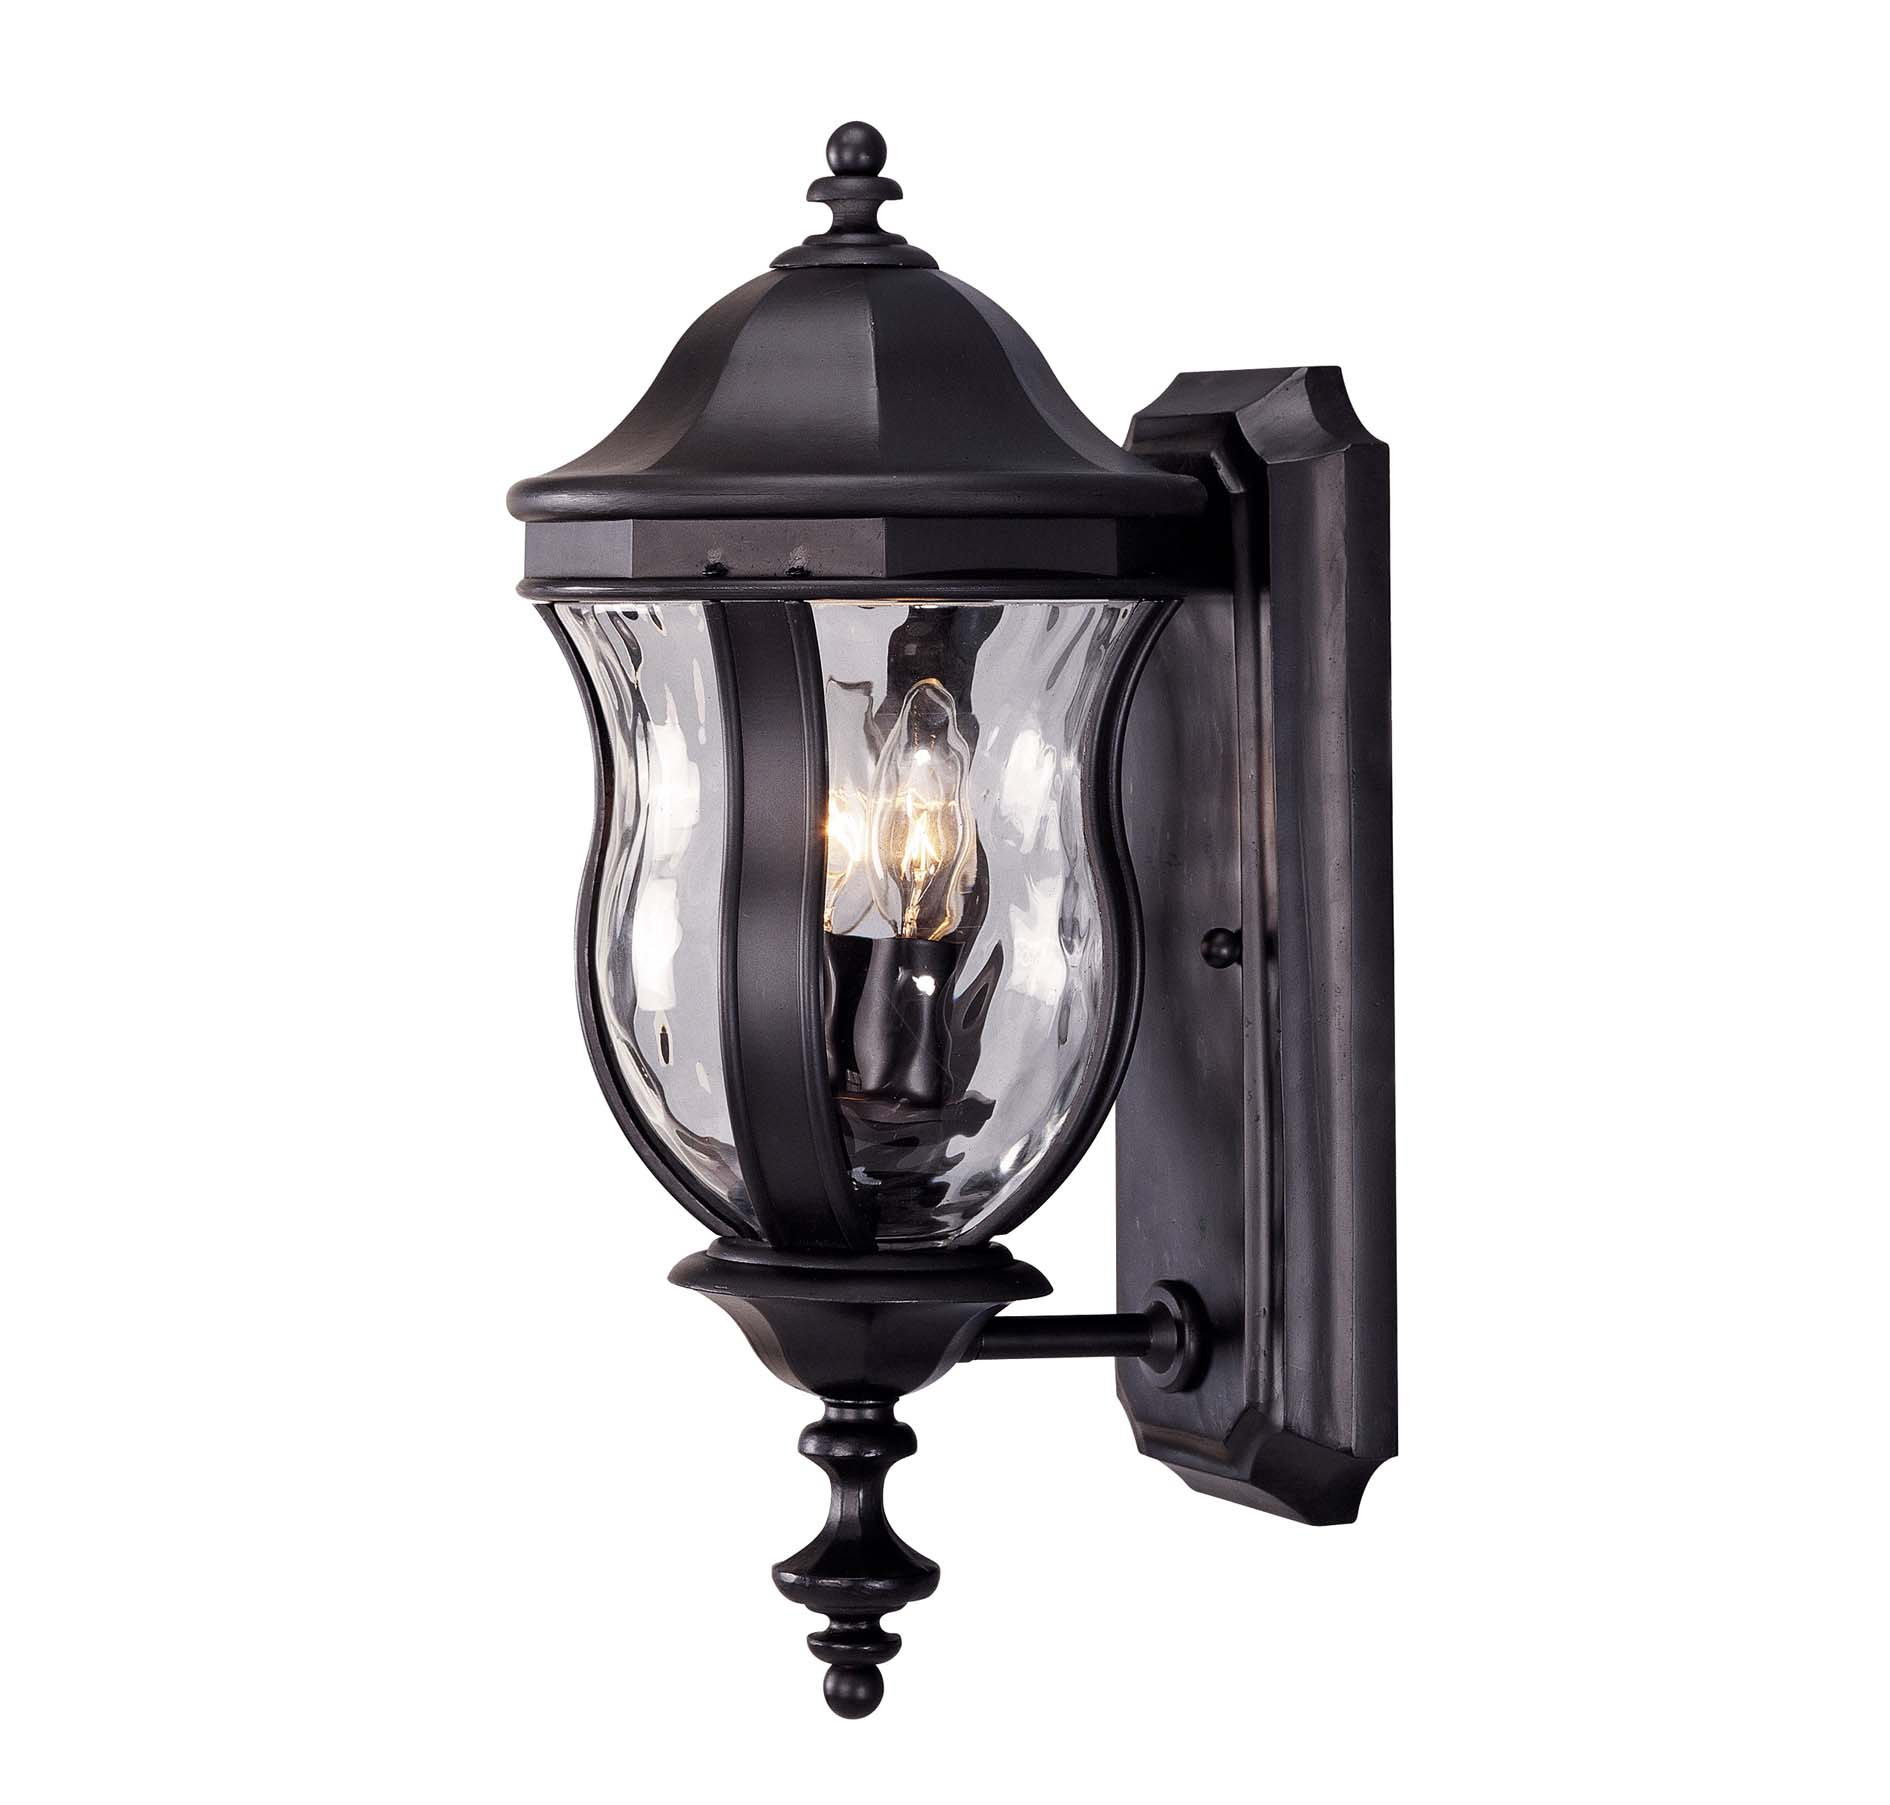 Monticello 304 Outdoor Wall Sconce By Savoy House Kp 5 304 Bk